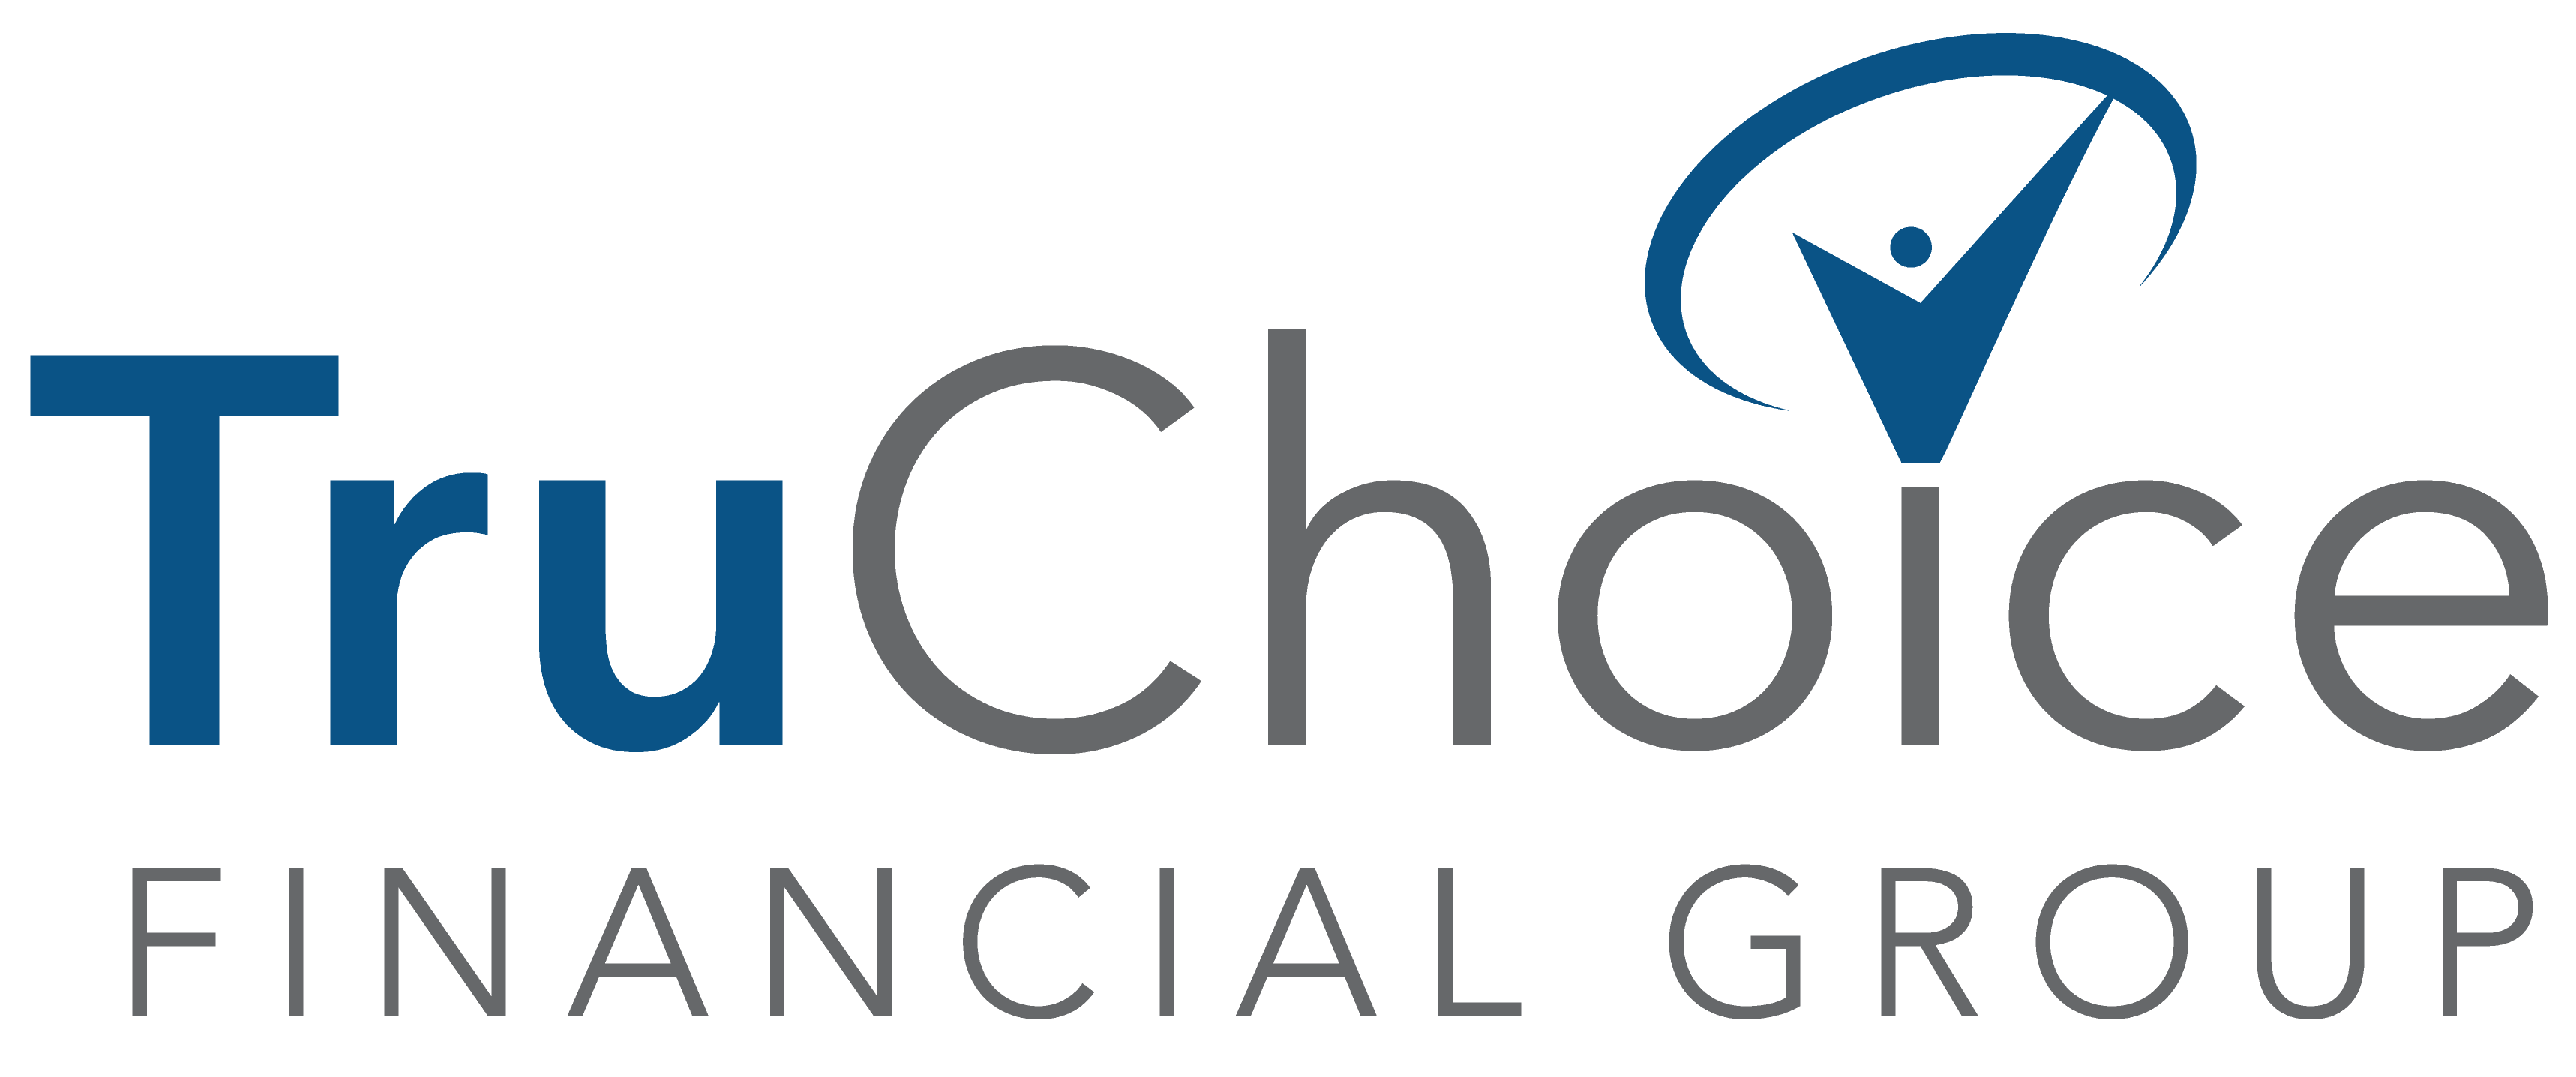 TruChoice Financial Group, LLC Launches Automated, Multi-Channel Marketing Platform for Financial Professionals